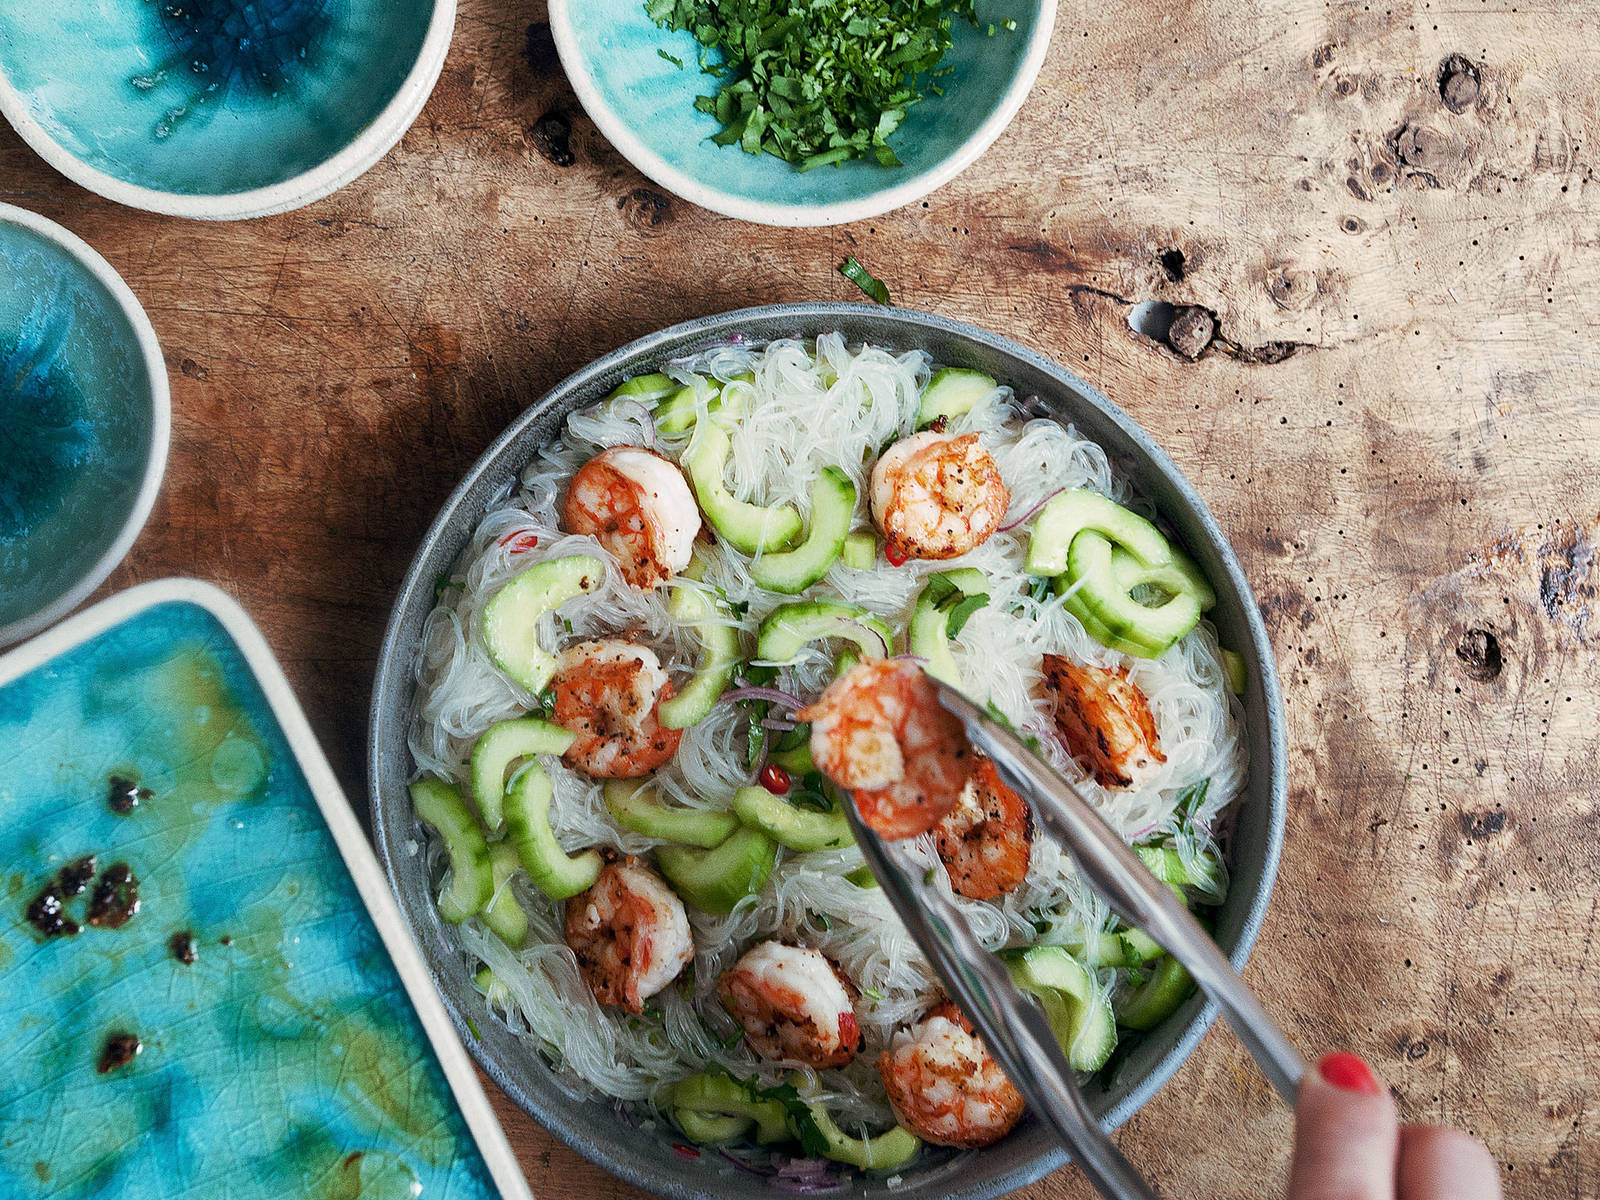 In a large bowl, combine cucumber, onion, garlic, chili pepper, toasted sesame oil, fish sauce, and lemon juice and toss. Add drained glass noodles to bowl along with shrimp. Mix everything thoroughly together. If desired, add more lime juice, sesame oil, or fish sauce to taste. Top with chopped coriander, serve and enjoy!